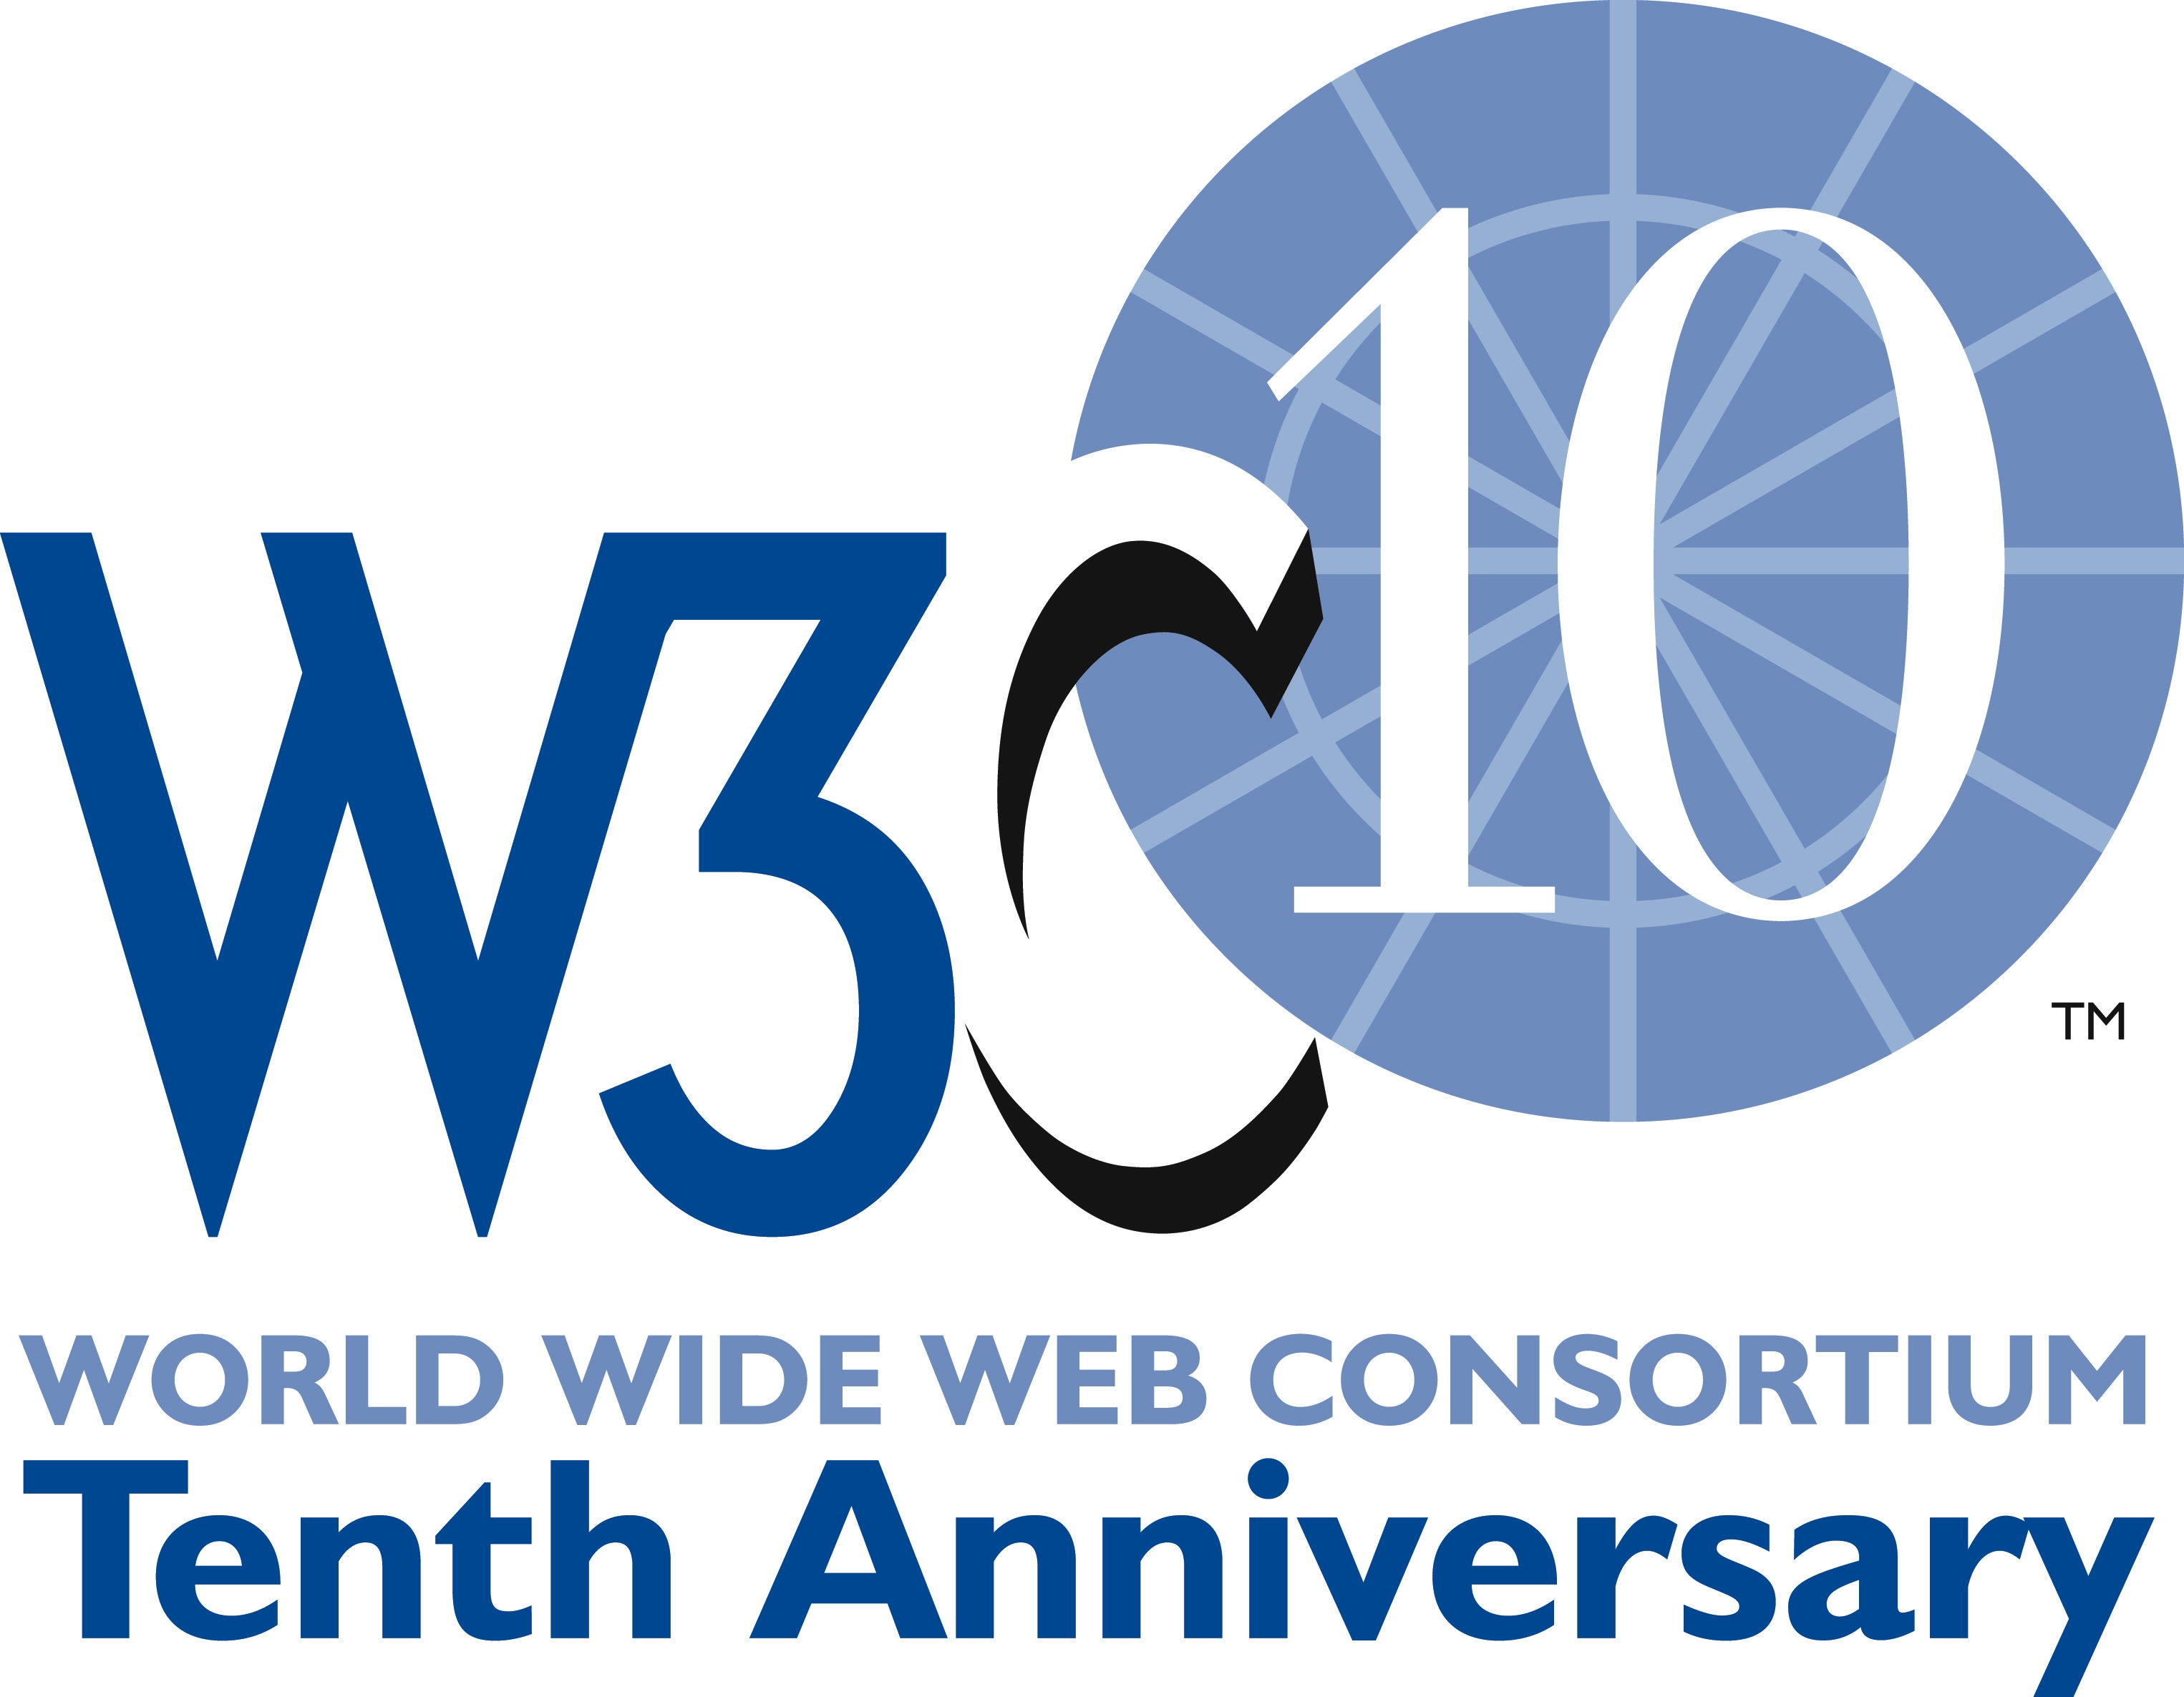 world wide web consortium essay Harry halpin is postdoctoral associate with the world wide web consortium at  the massachusetts institute of technology, and a visiting researcher at the.